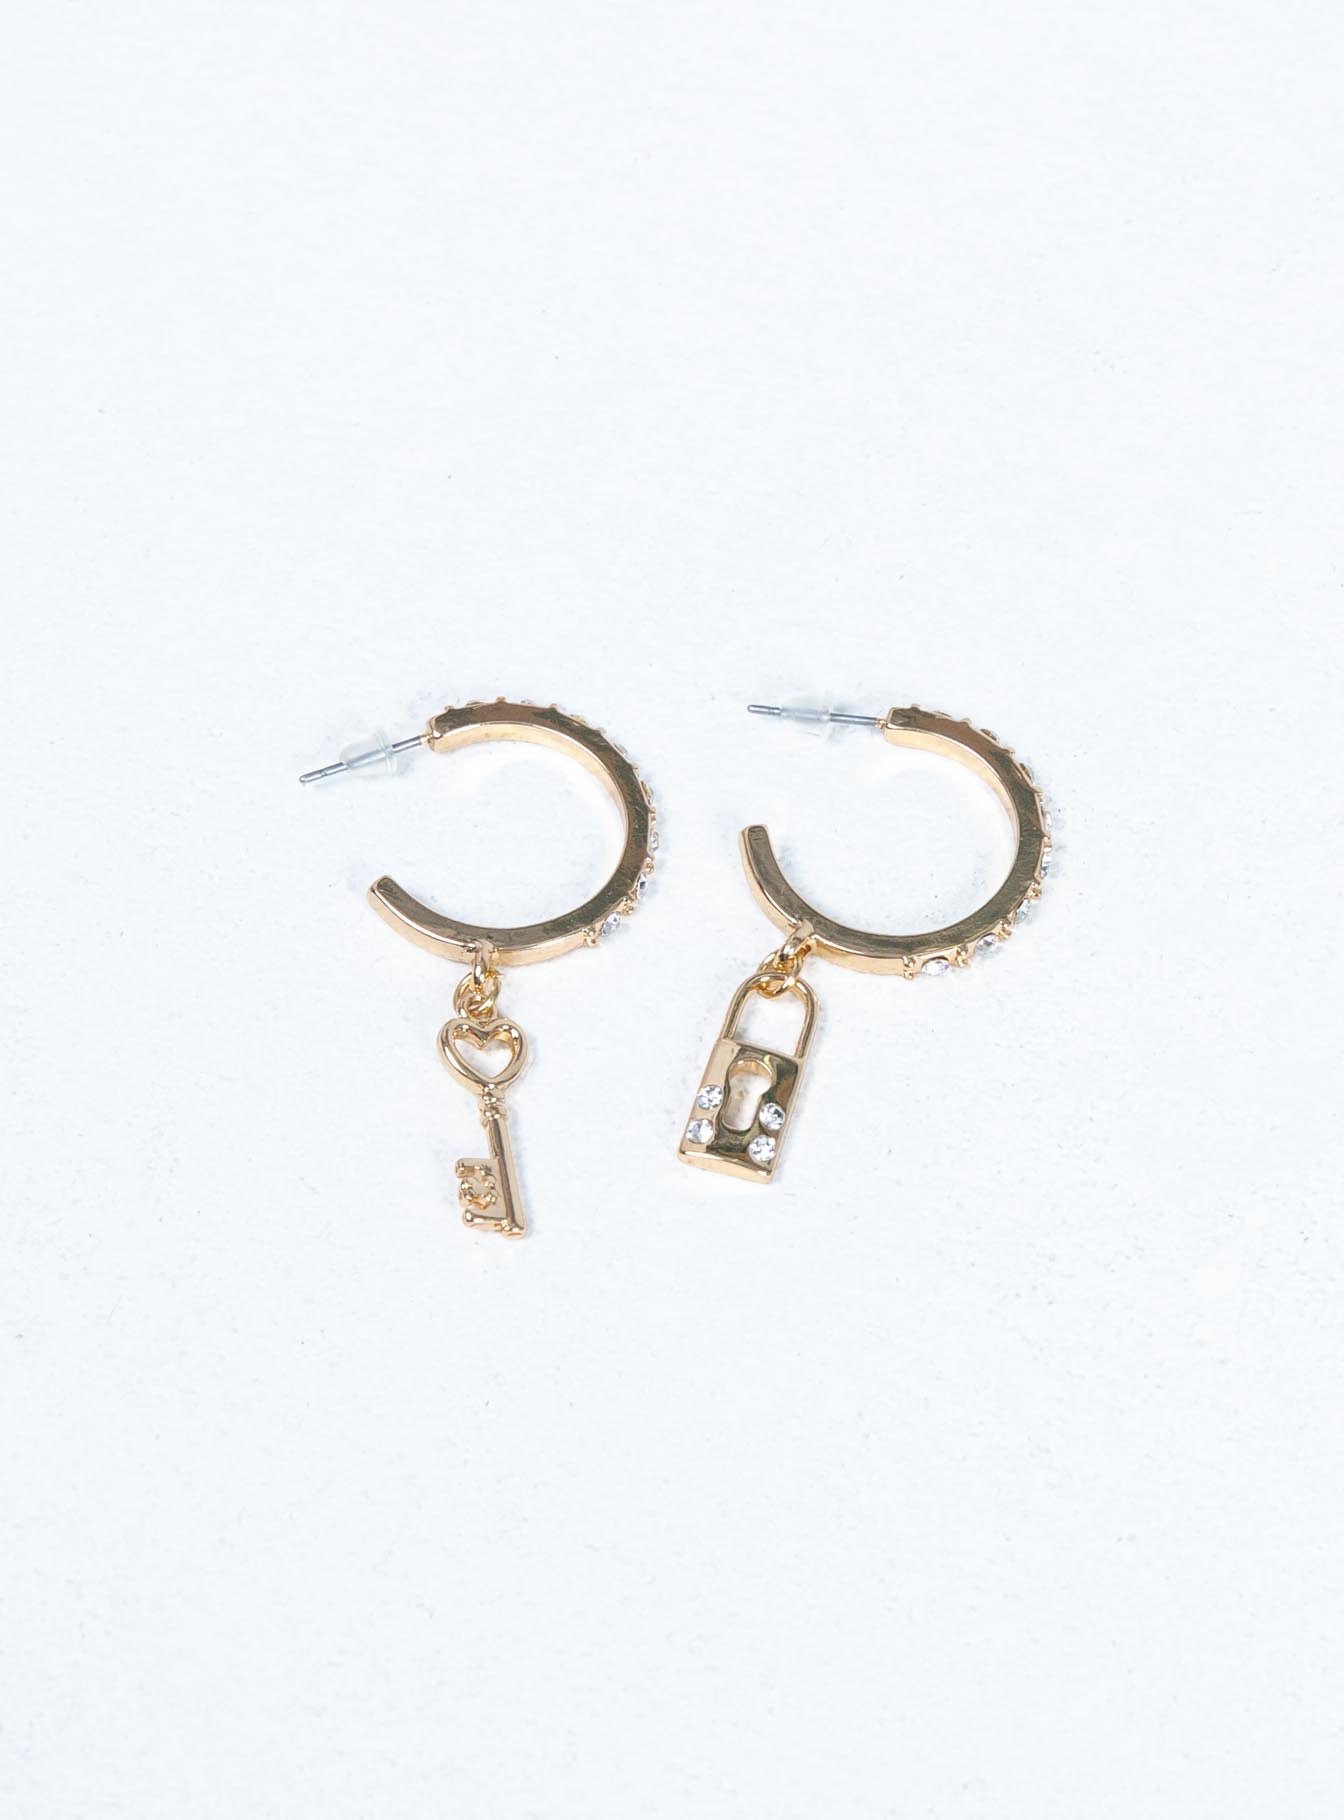 Lock & Key Earrings